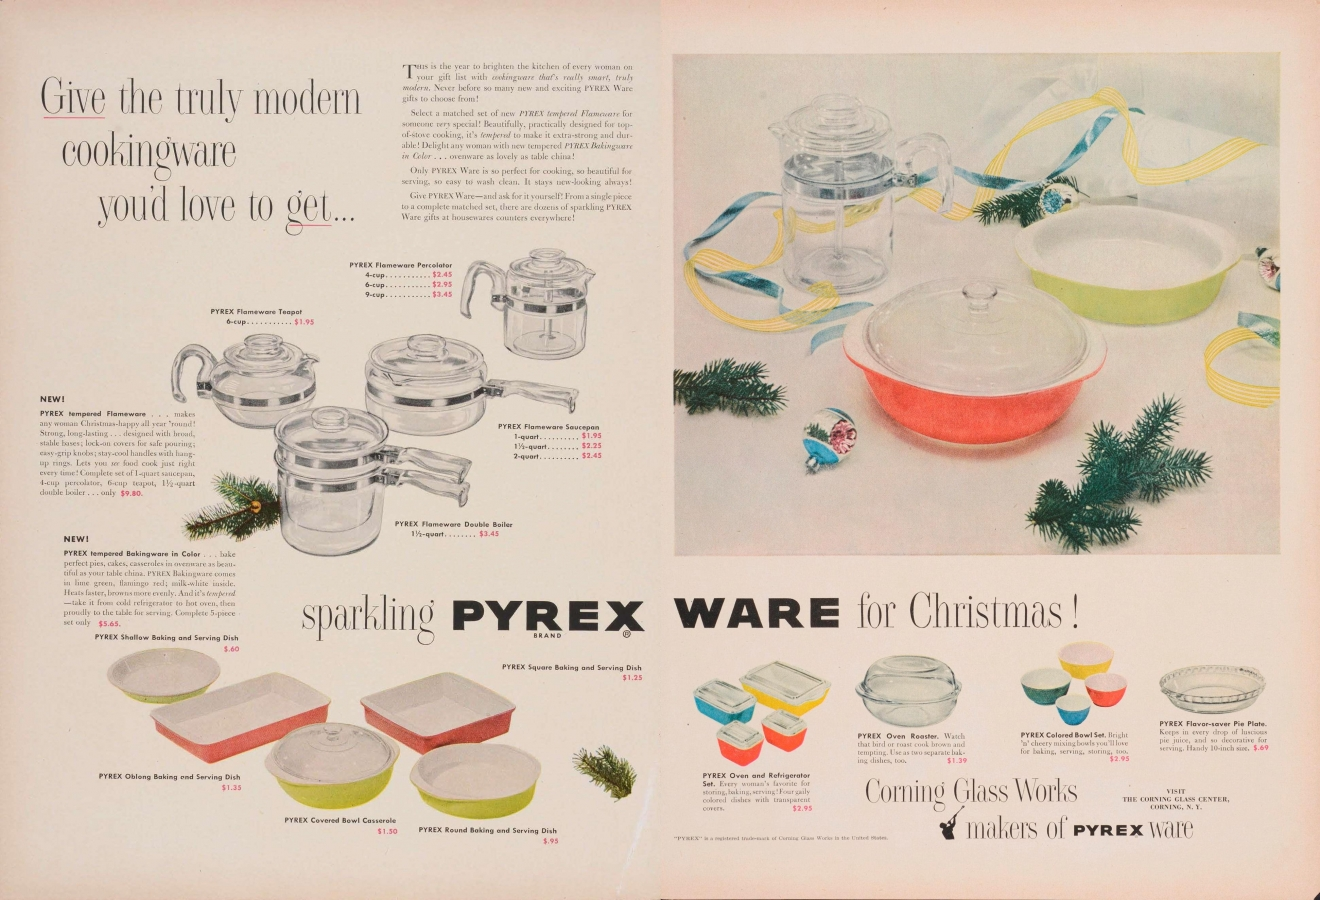 """Give the truly modern cookingware you'd love to get… sparkling Pyrex ware for Christmas!"""